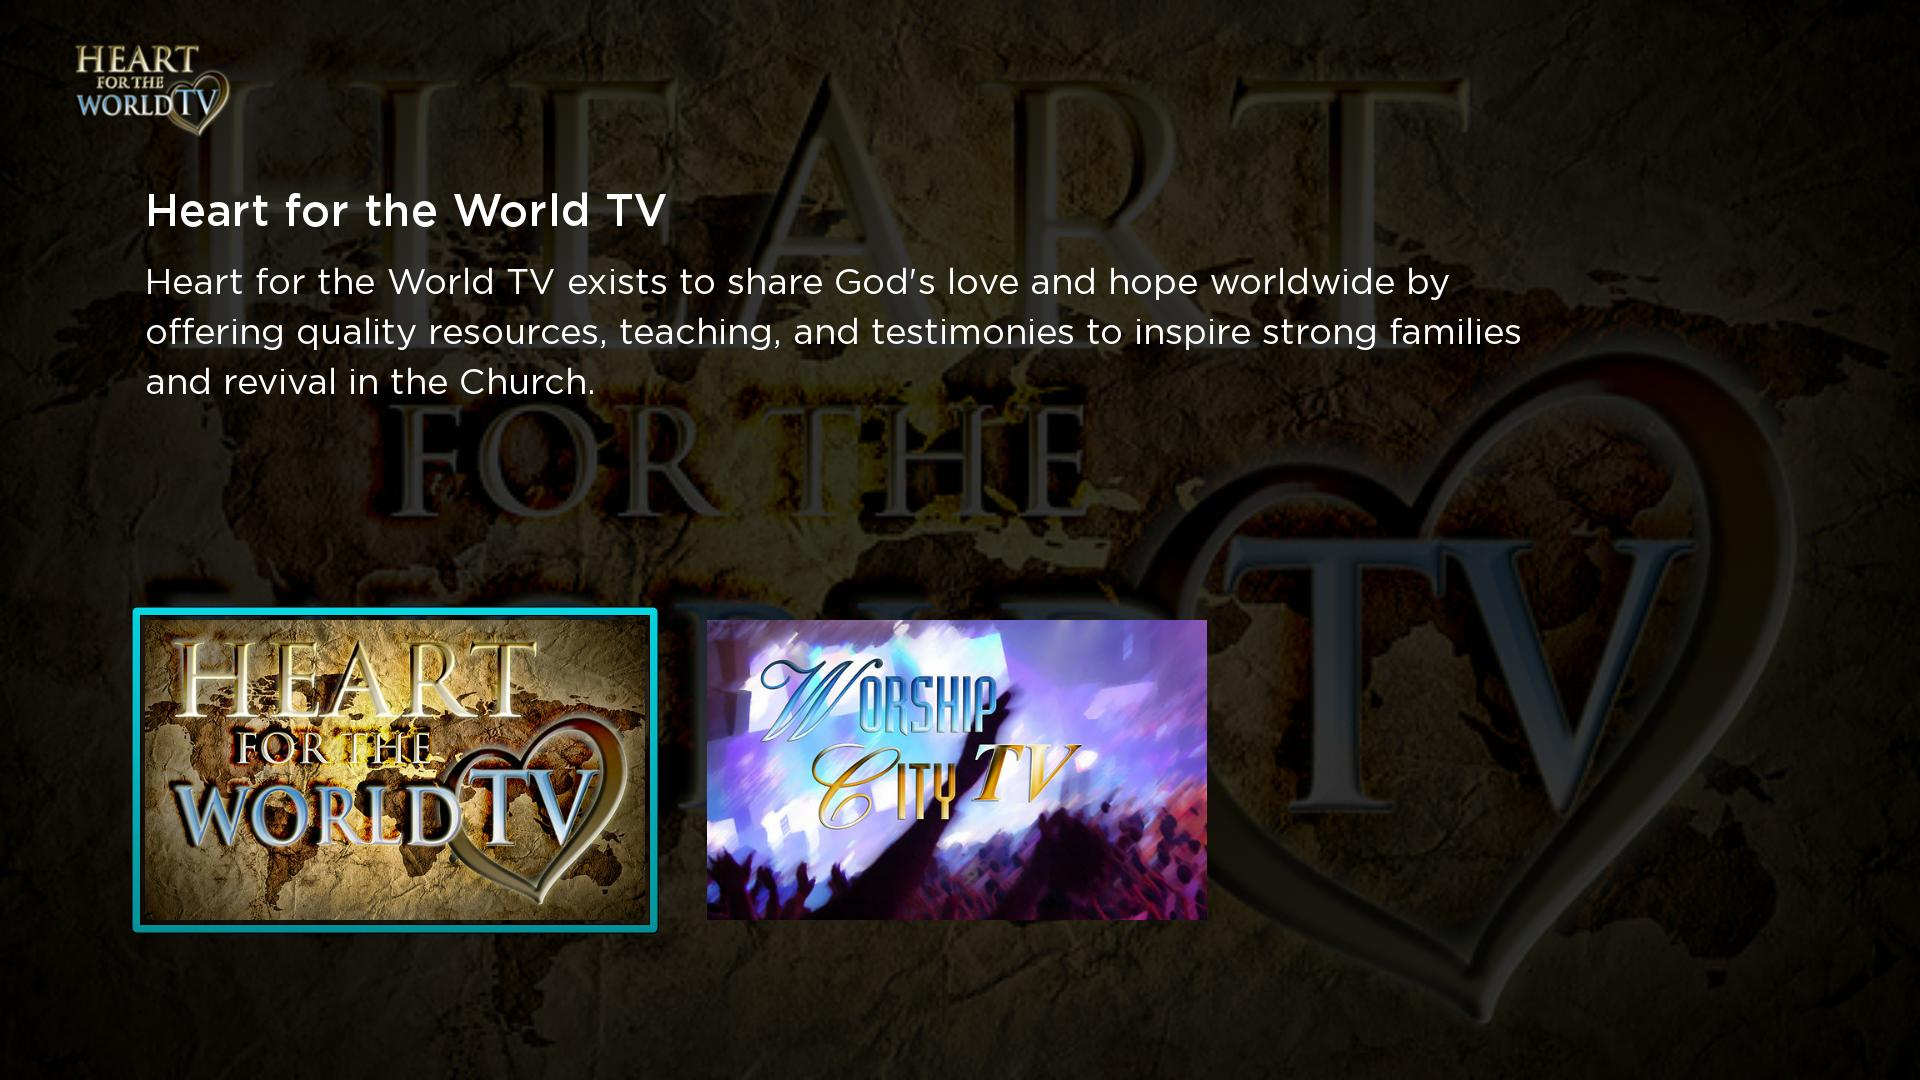 Heart for the World TV Screenshot 001